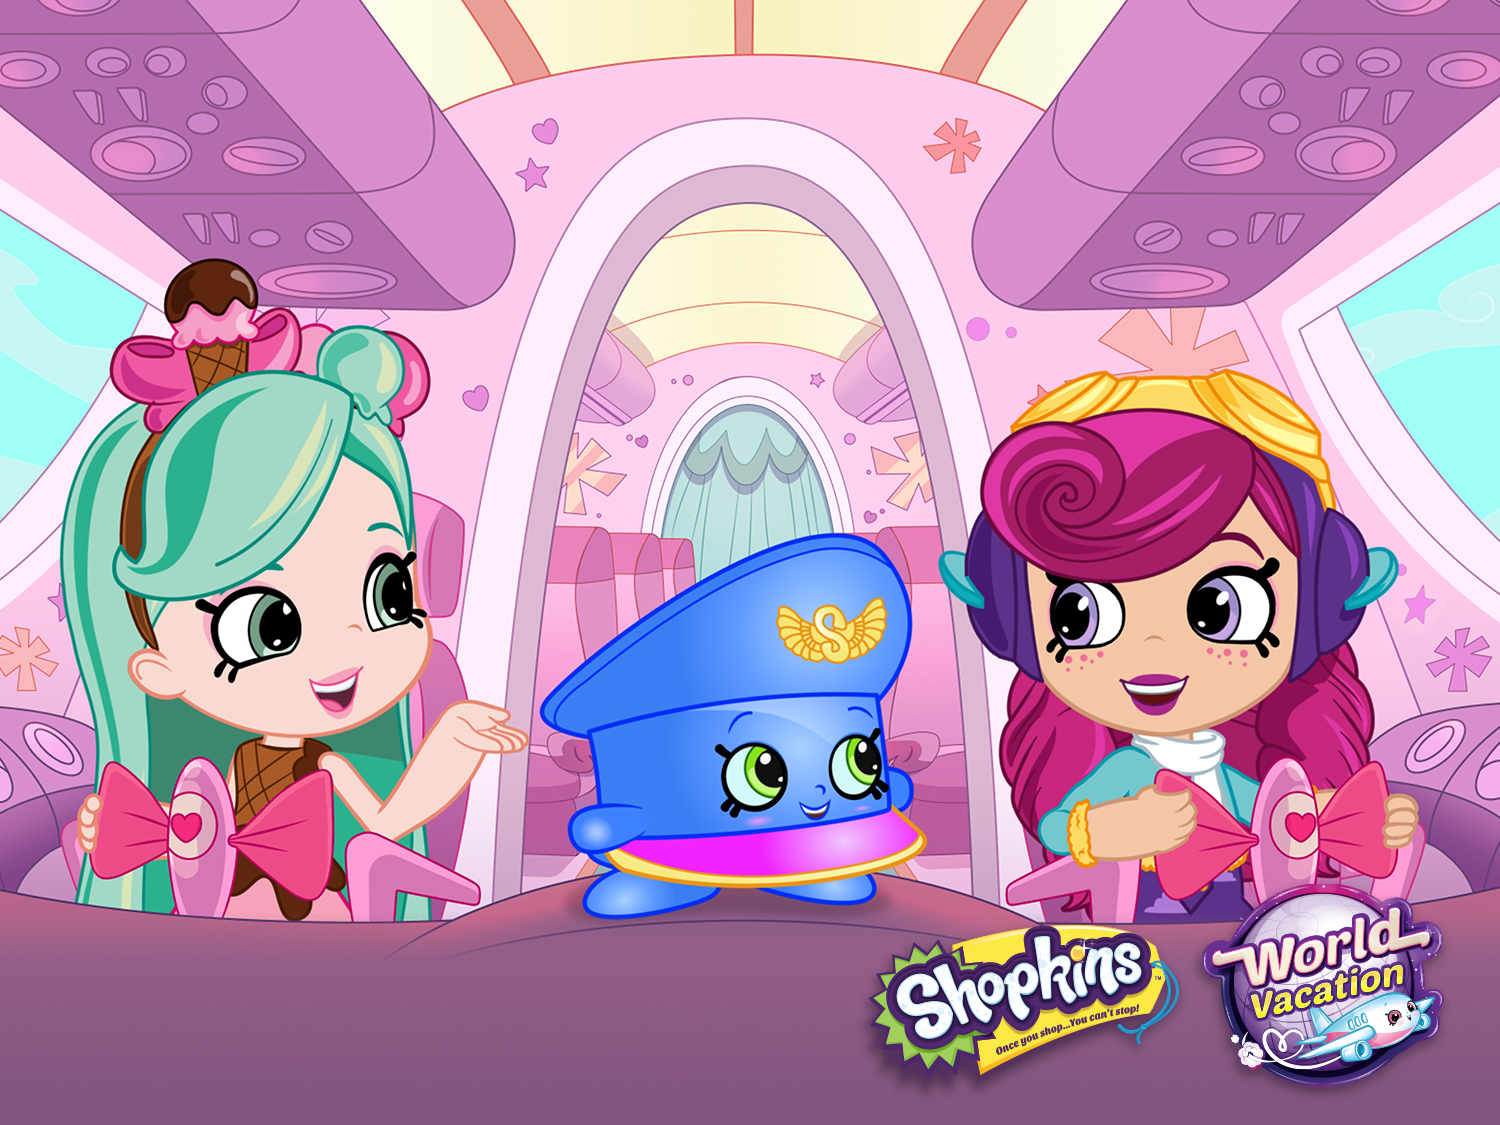 Shopkins World Vacation - Moose ToysFamily Animated Feature (80 Minutes)SERVICE PRODUCTION